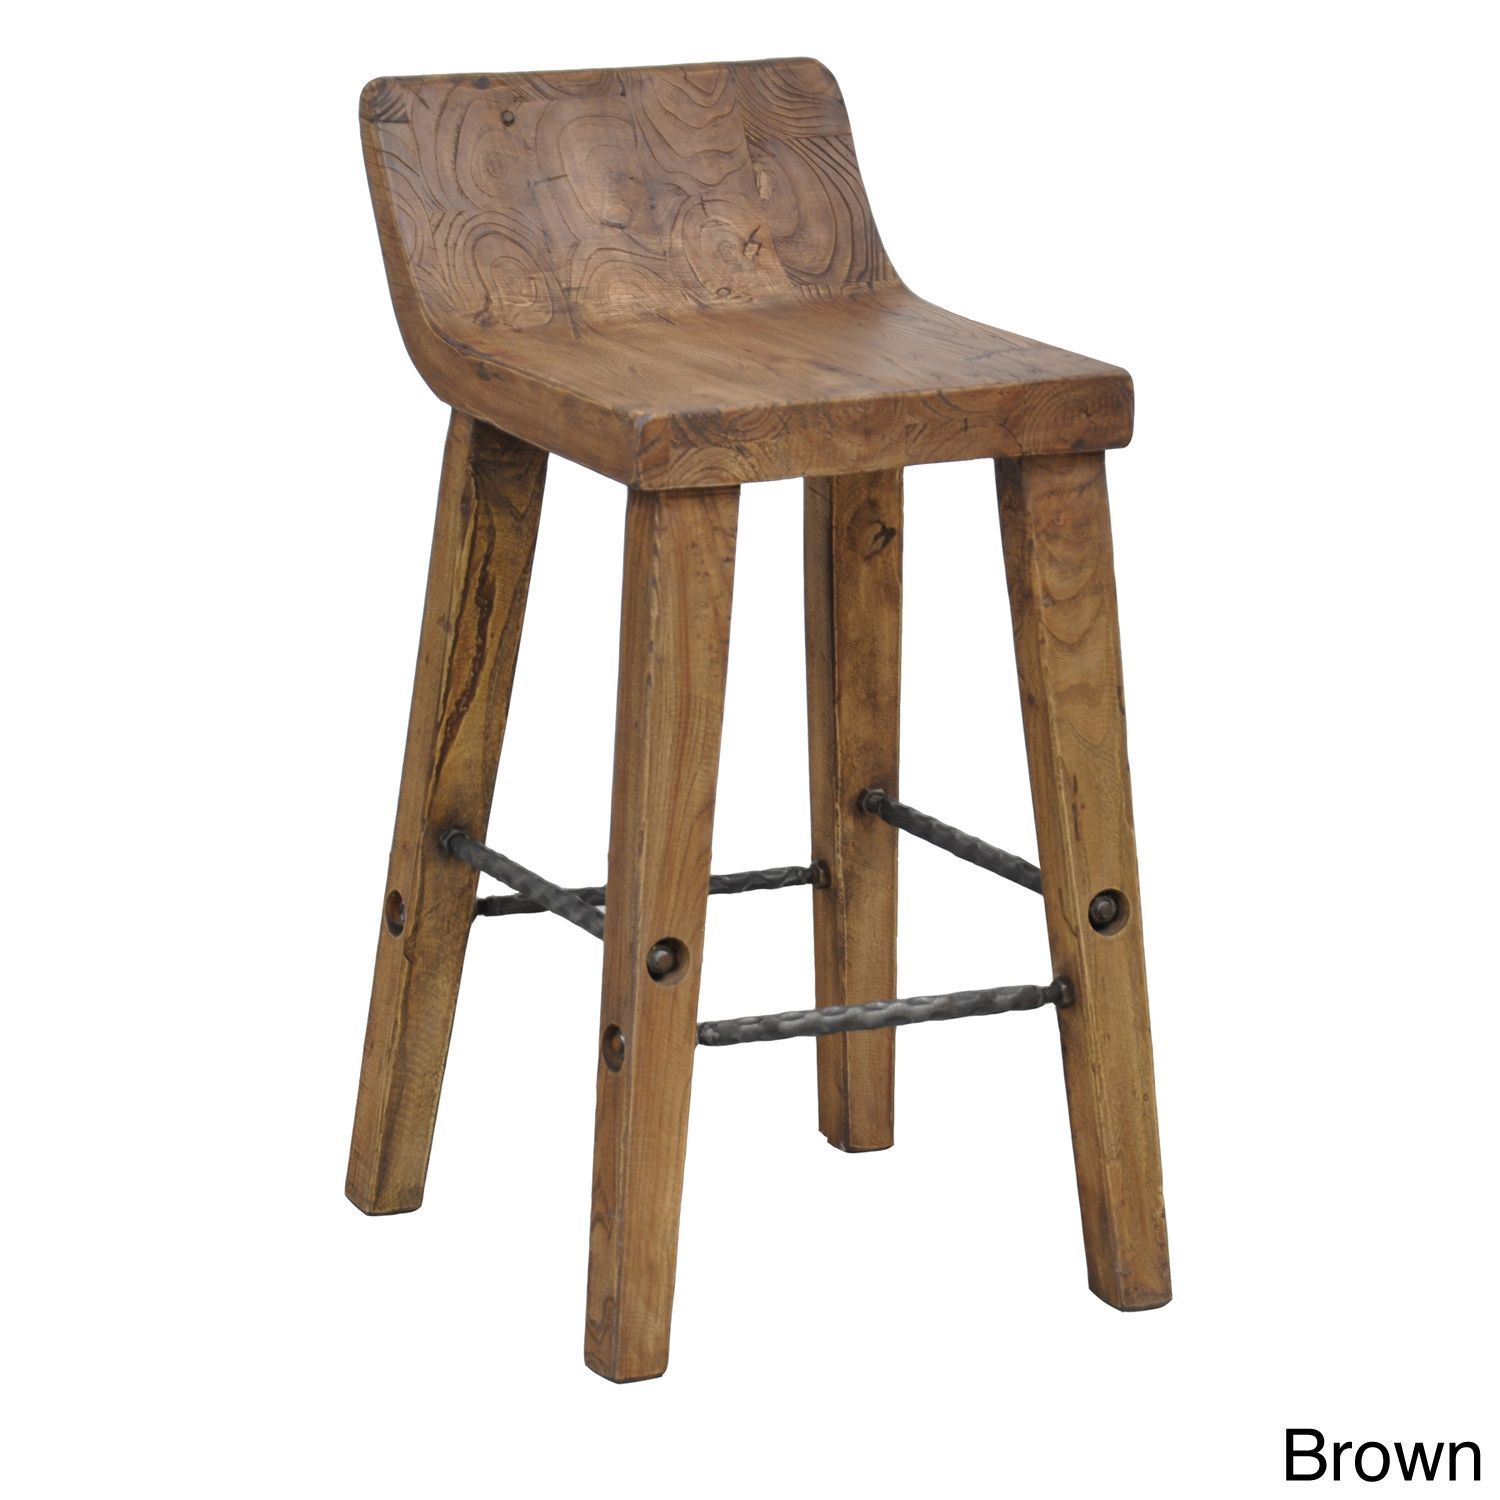 Kosas Home Tam Rustic Elm Wood and Iron Low Back 24-inch Counter Stool  sc 1 st  Pinterest & Kosas Home Tam Rustic Brown Elm Wood and Iron Low Back 24-inch ... islam-shia.org